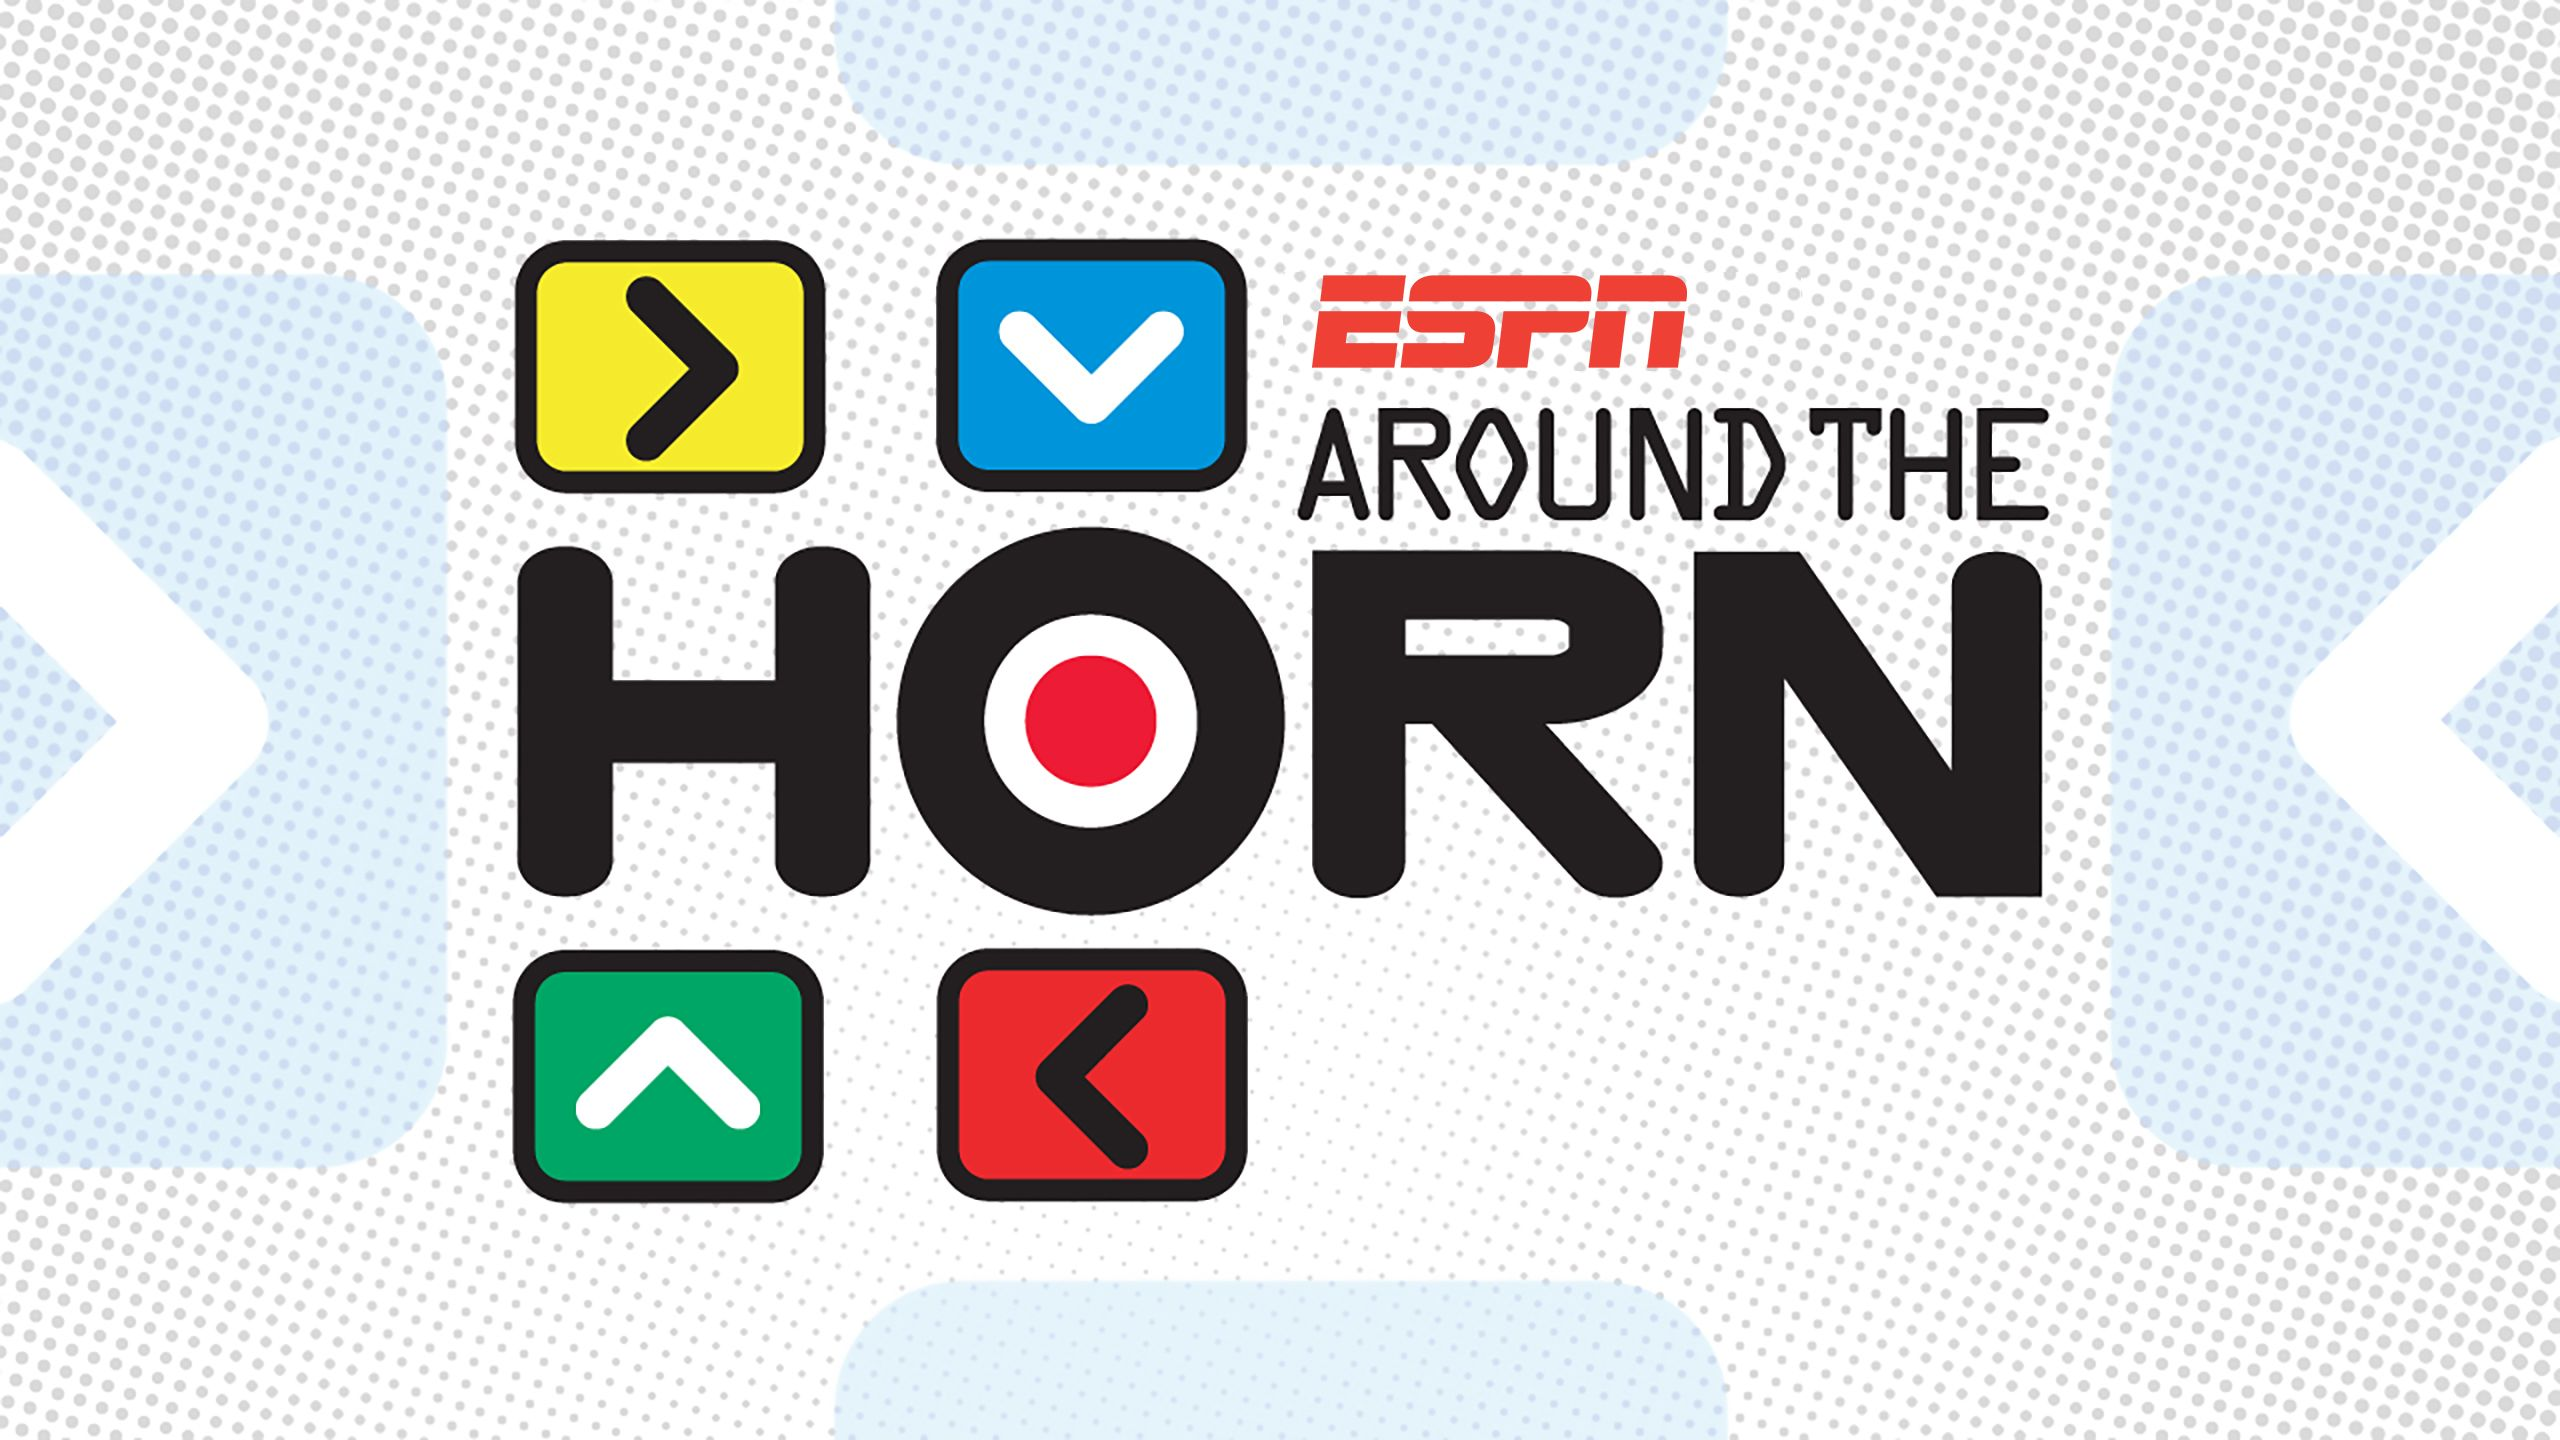 Mon, 5/21 - Around The Horn